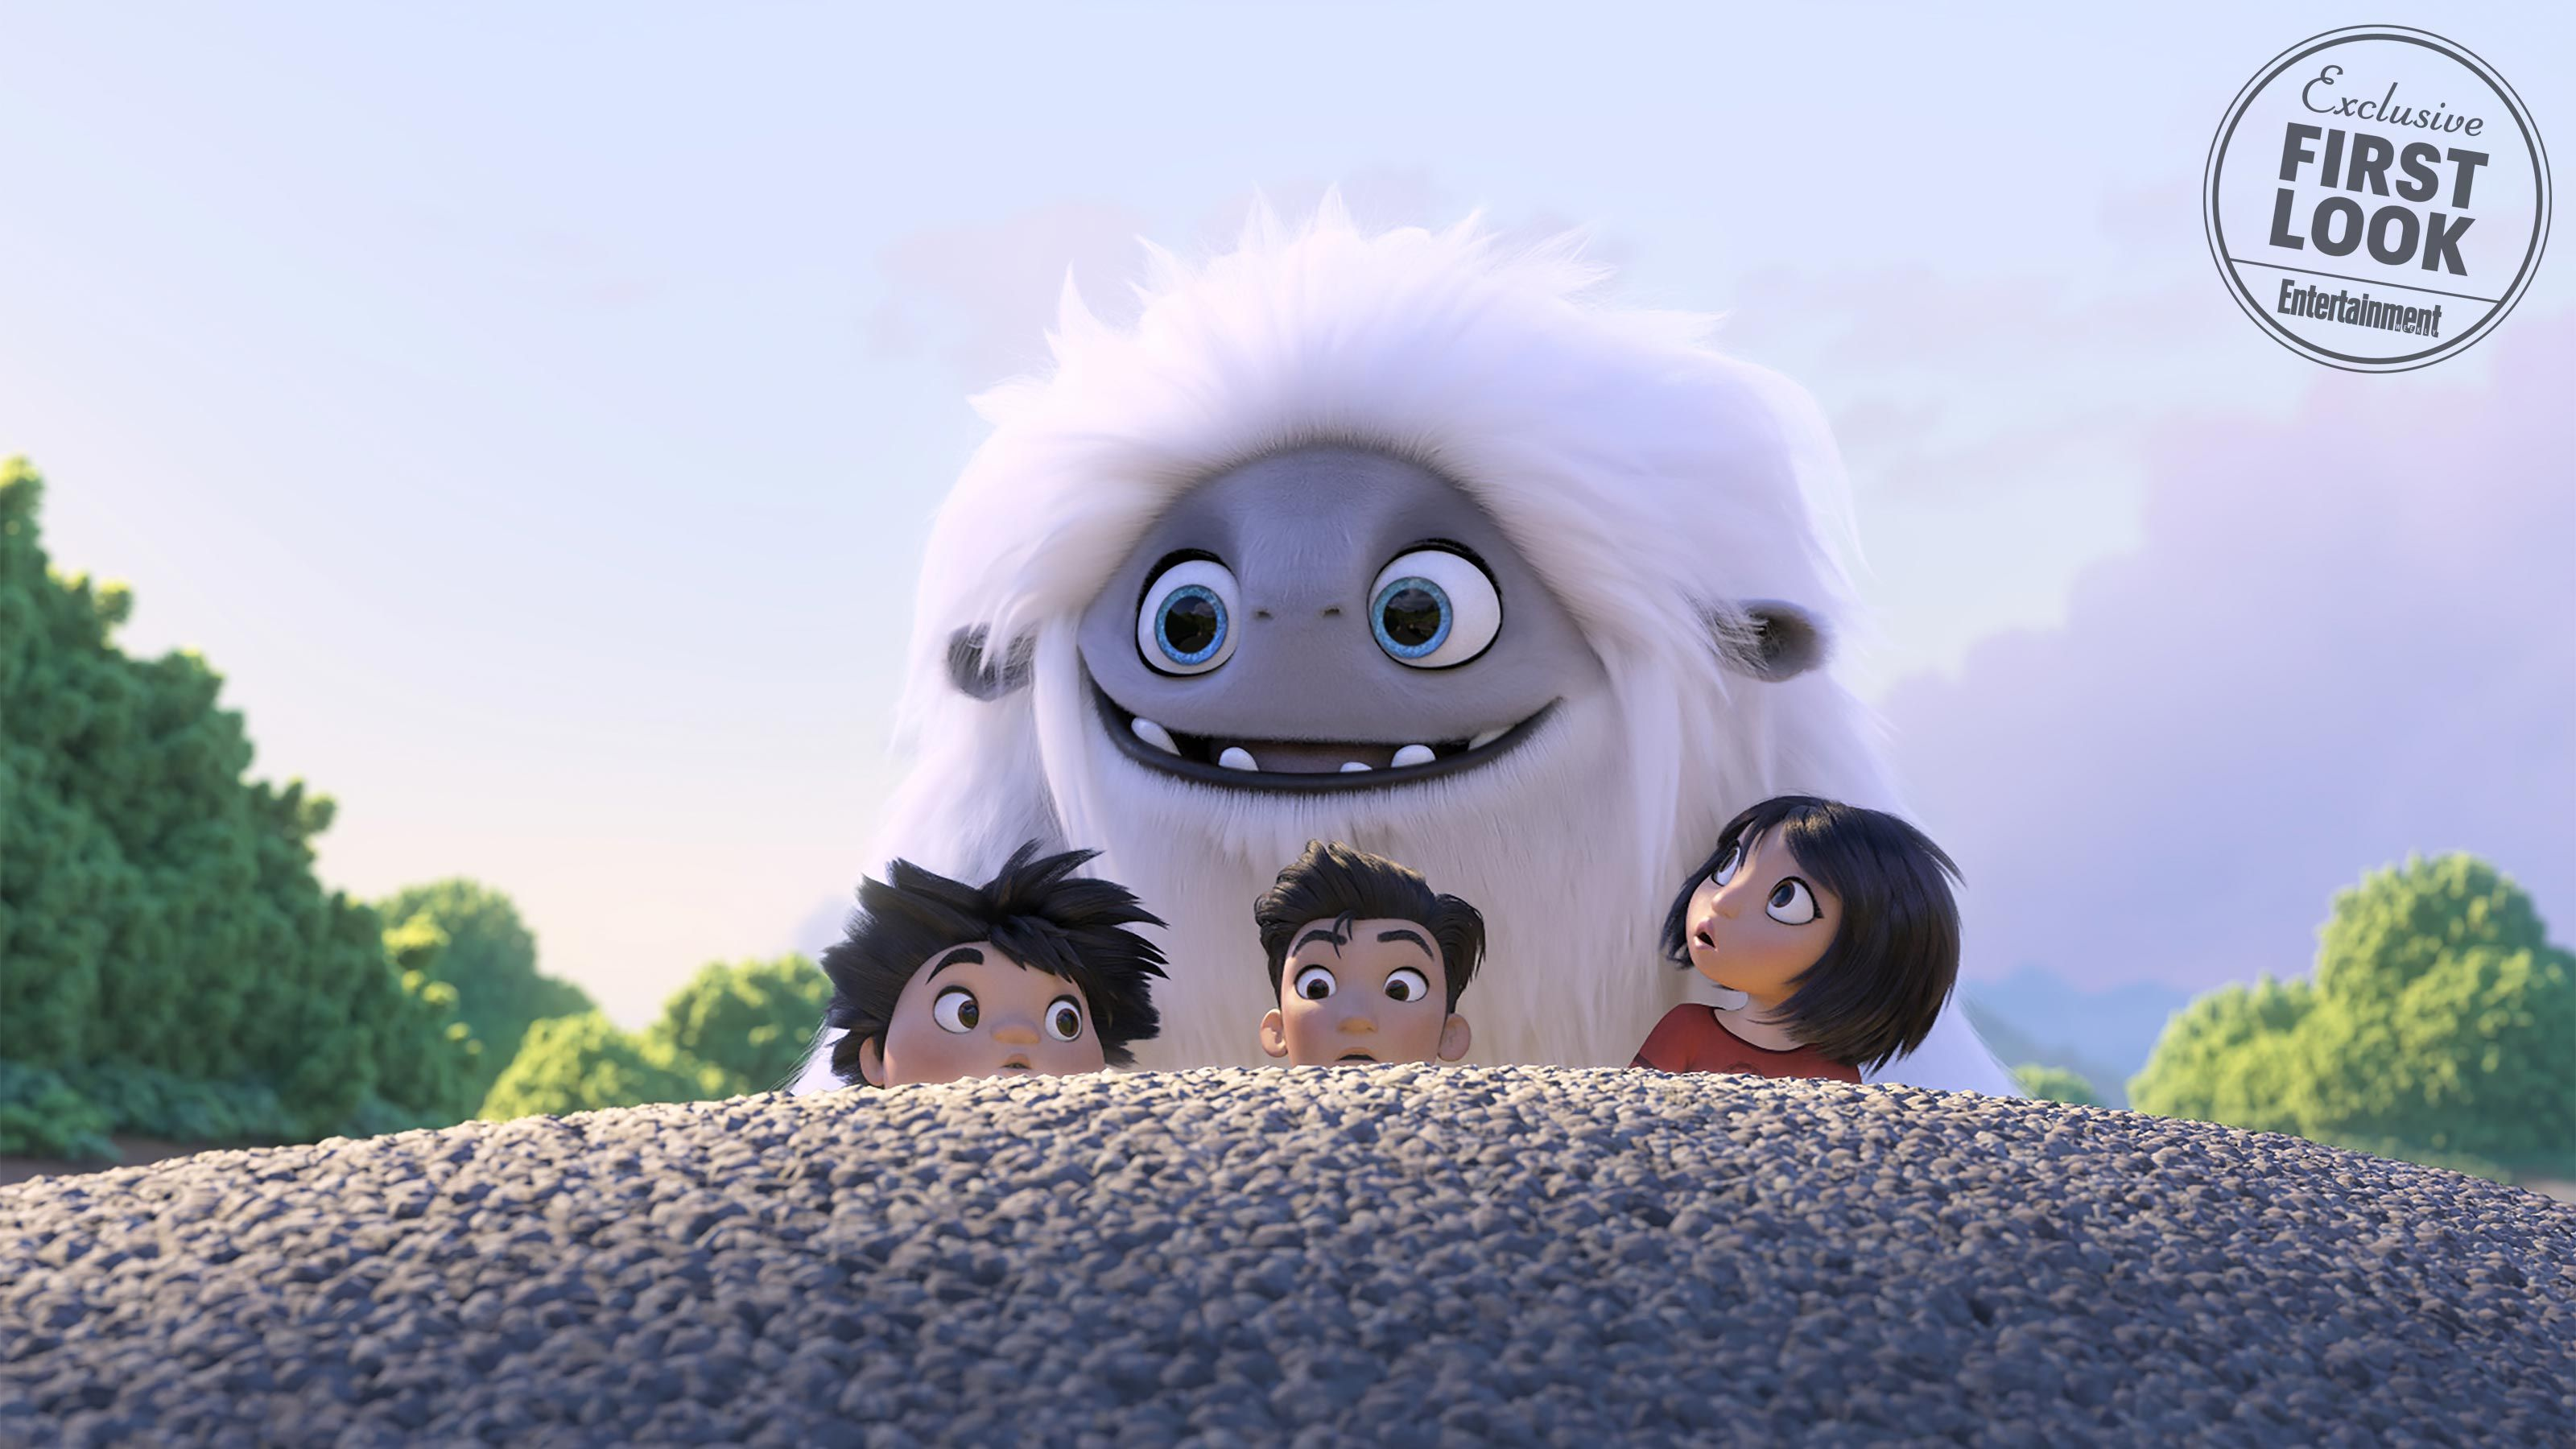 Exclusive Meet The Fuzzy Yeti Hero Of Abominable Dreamworks Next Film Dreamworks Animated Movies Dreamworks Animation